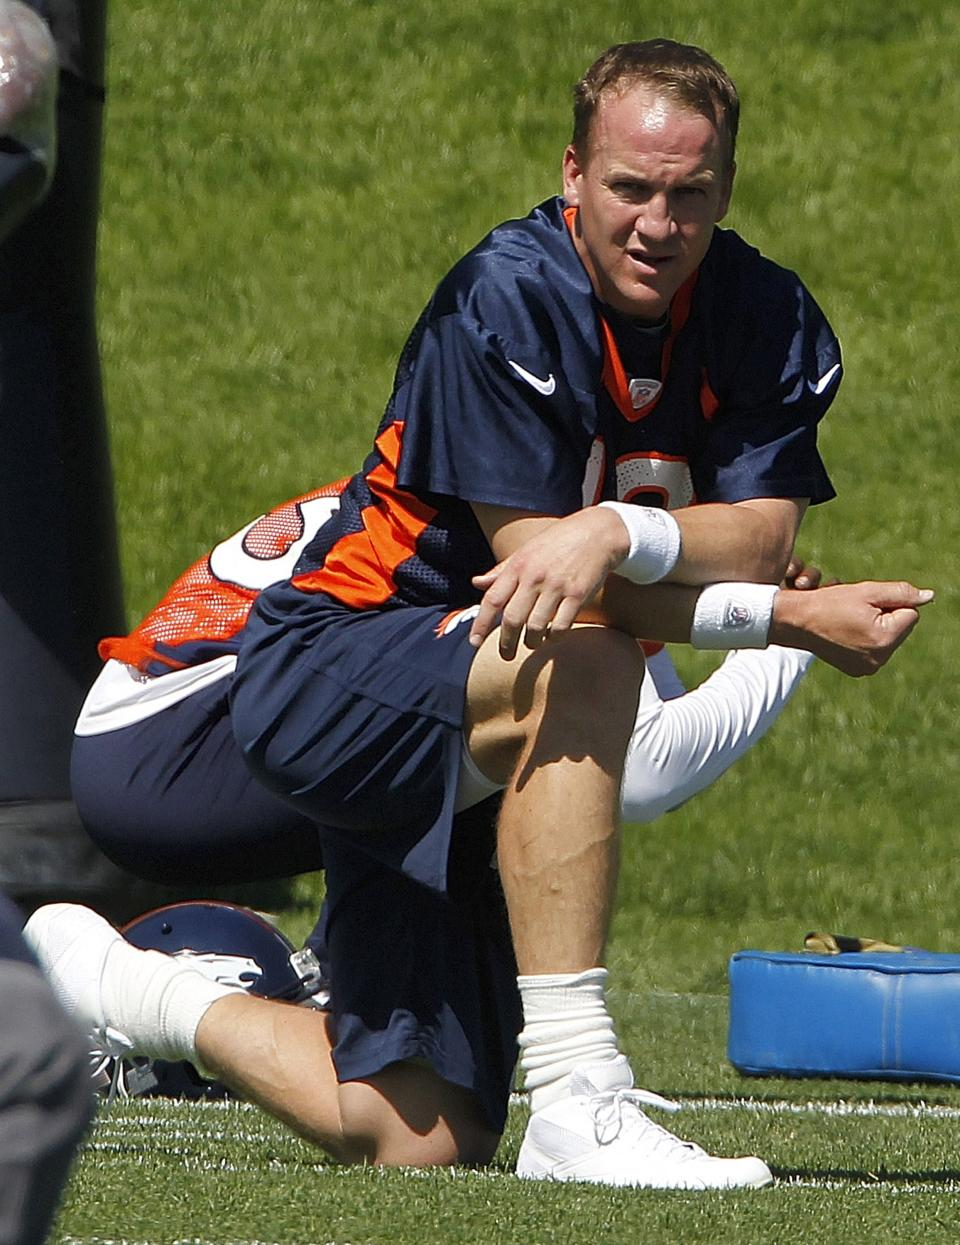 Denver Broncos quarterback Peyton Manning takes a knee during stretching at minicamp at the NFL team's football training facility in Englewood, Colo., on Monday, May 21, 2012.  (AP Photo/Ed Andrieski)